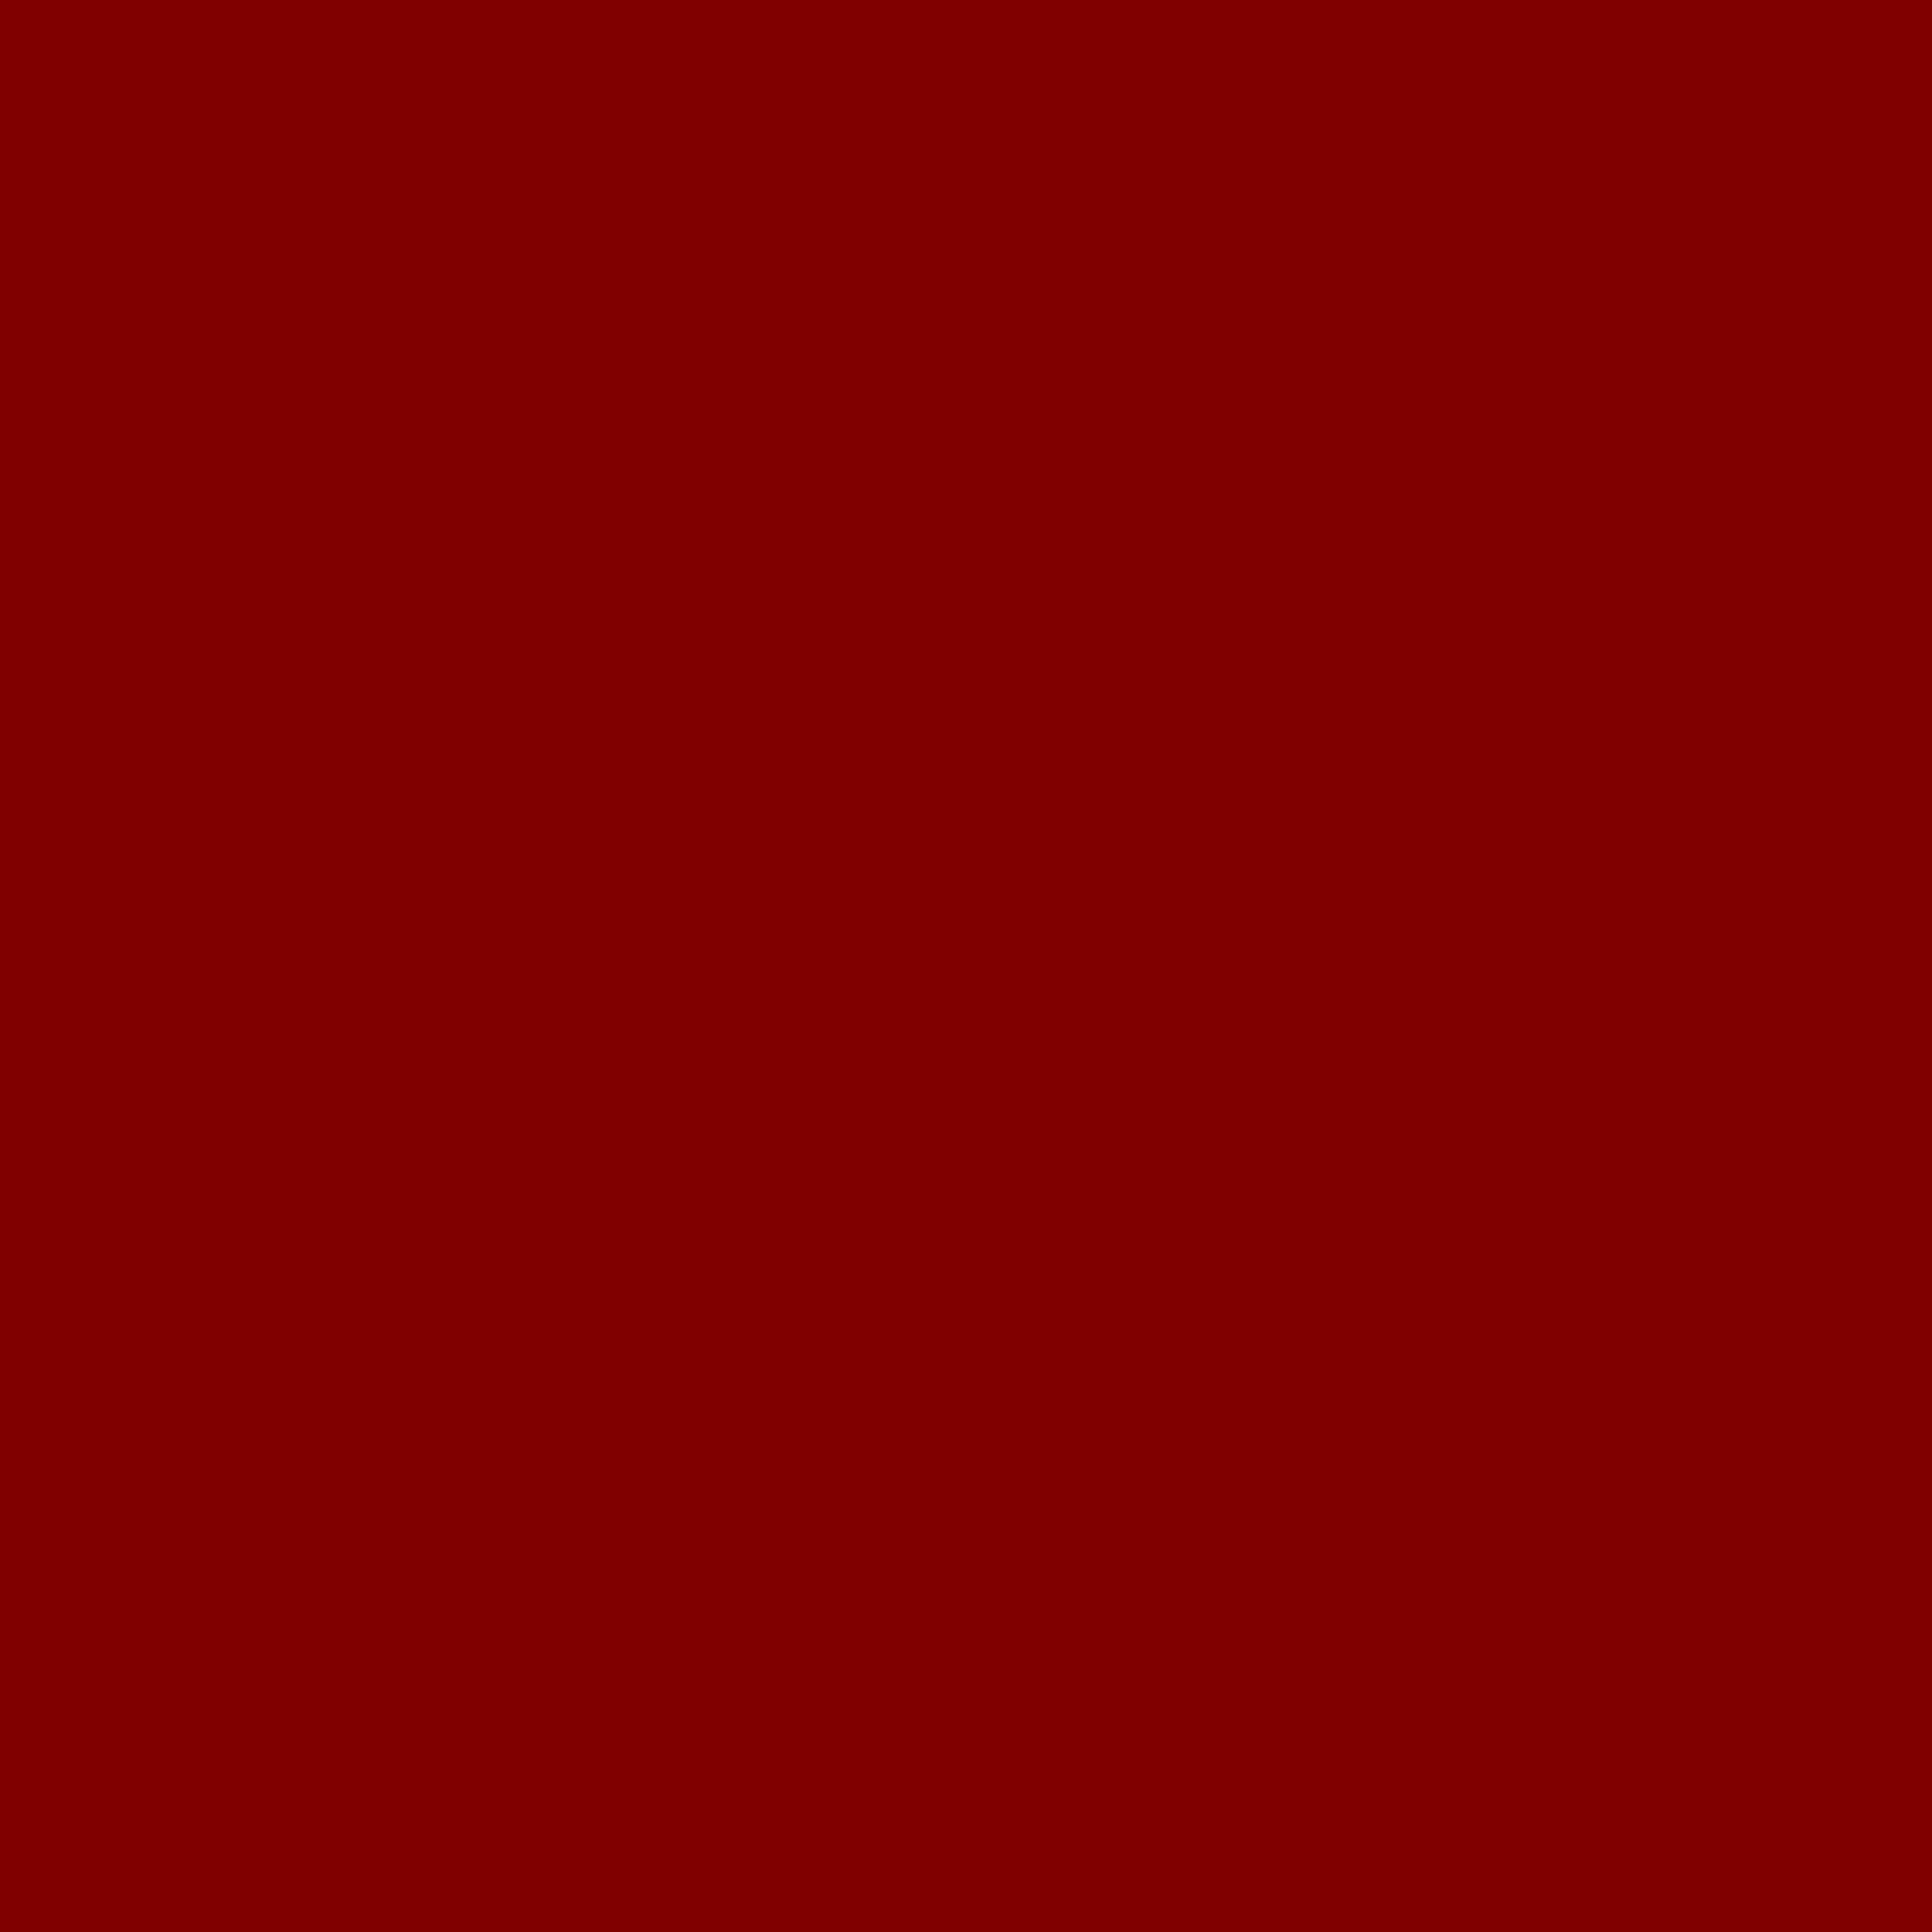 2732x2732 Maroon Web Solid Color Background